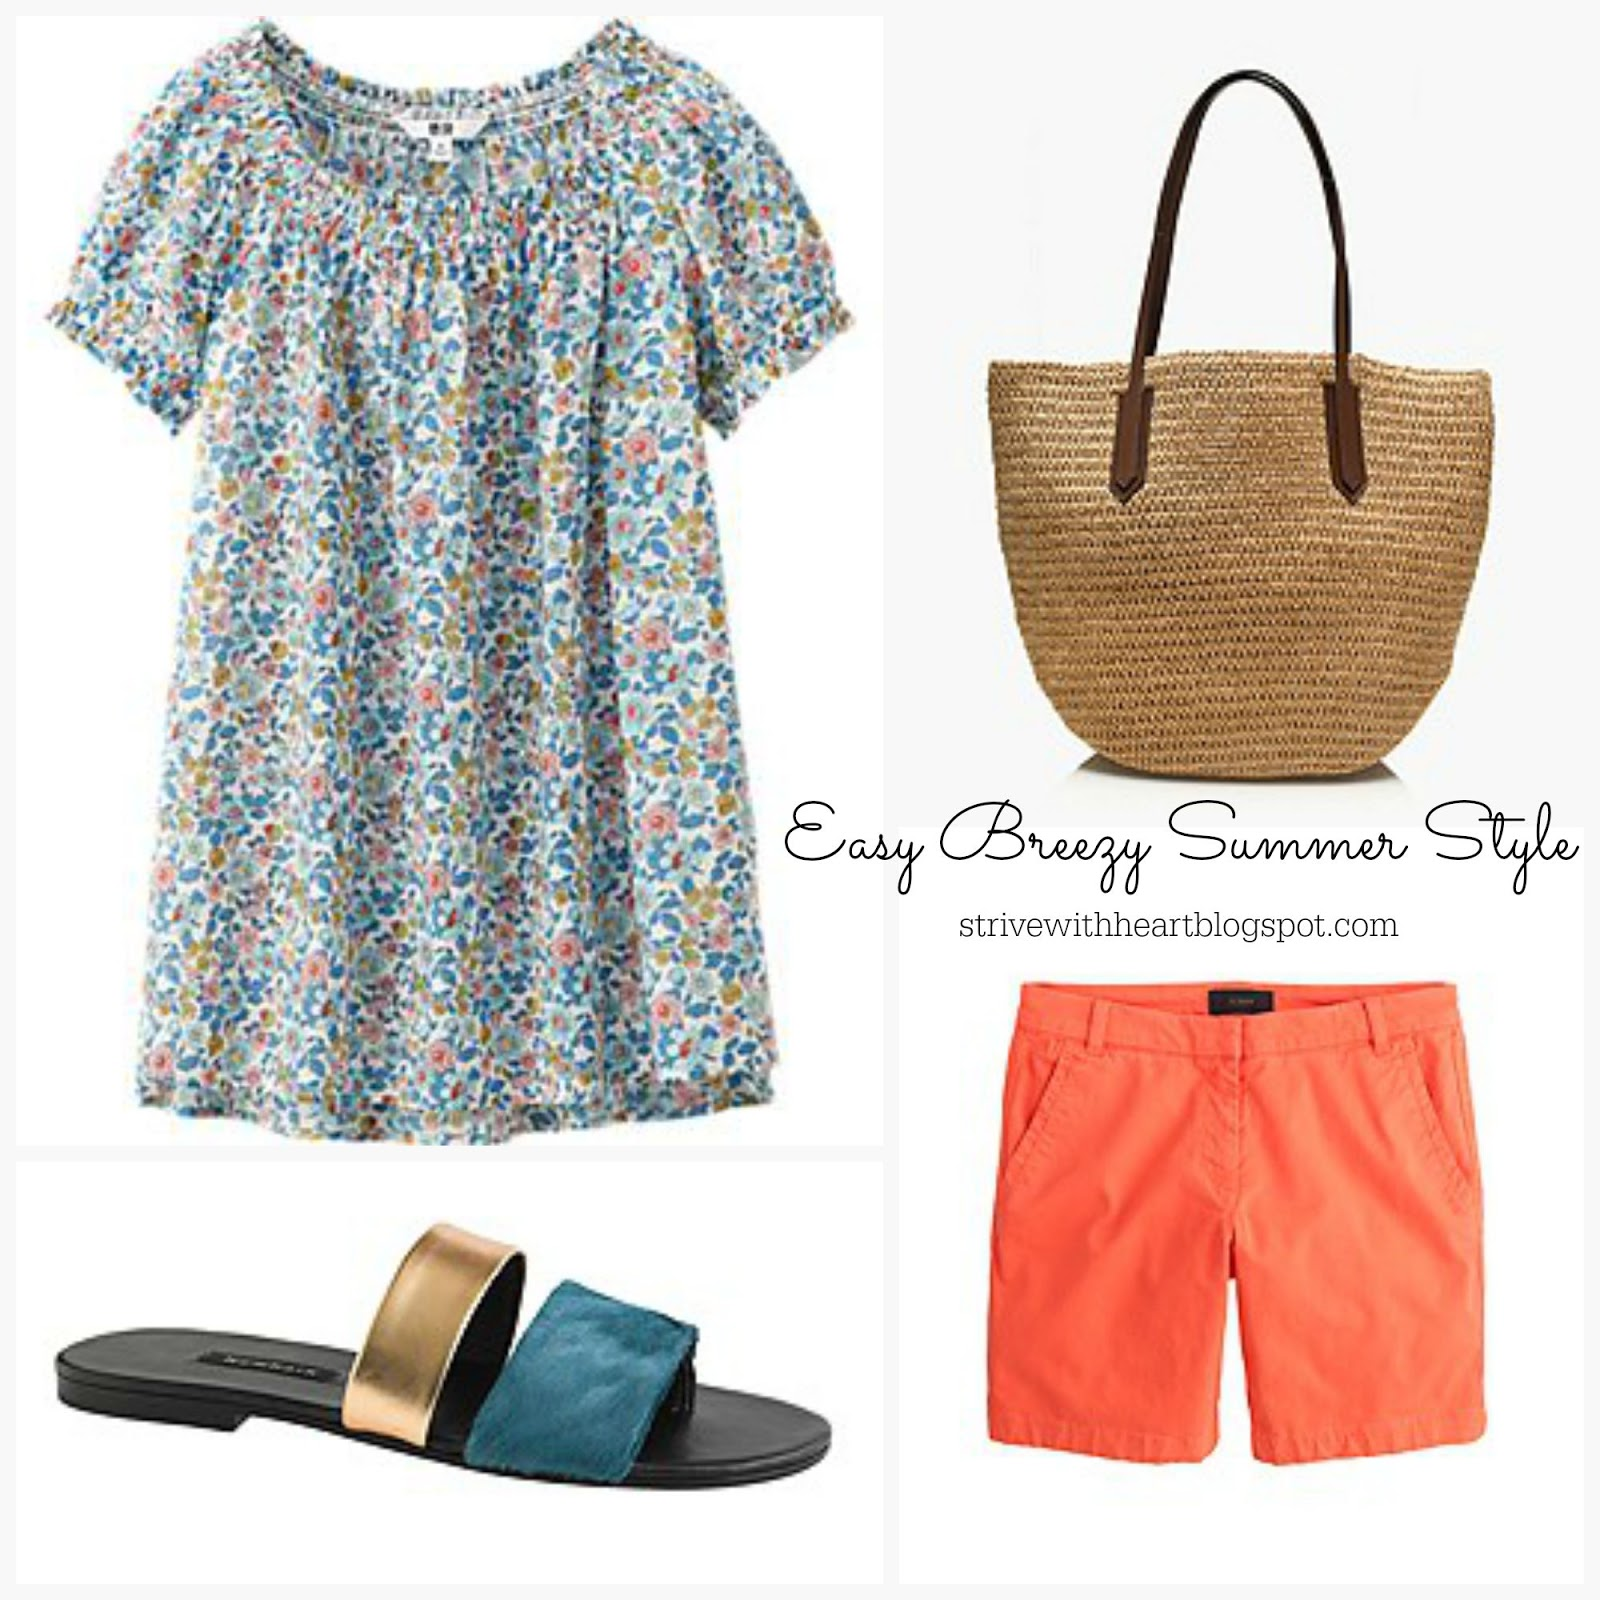 Easy Breezy Summer Style